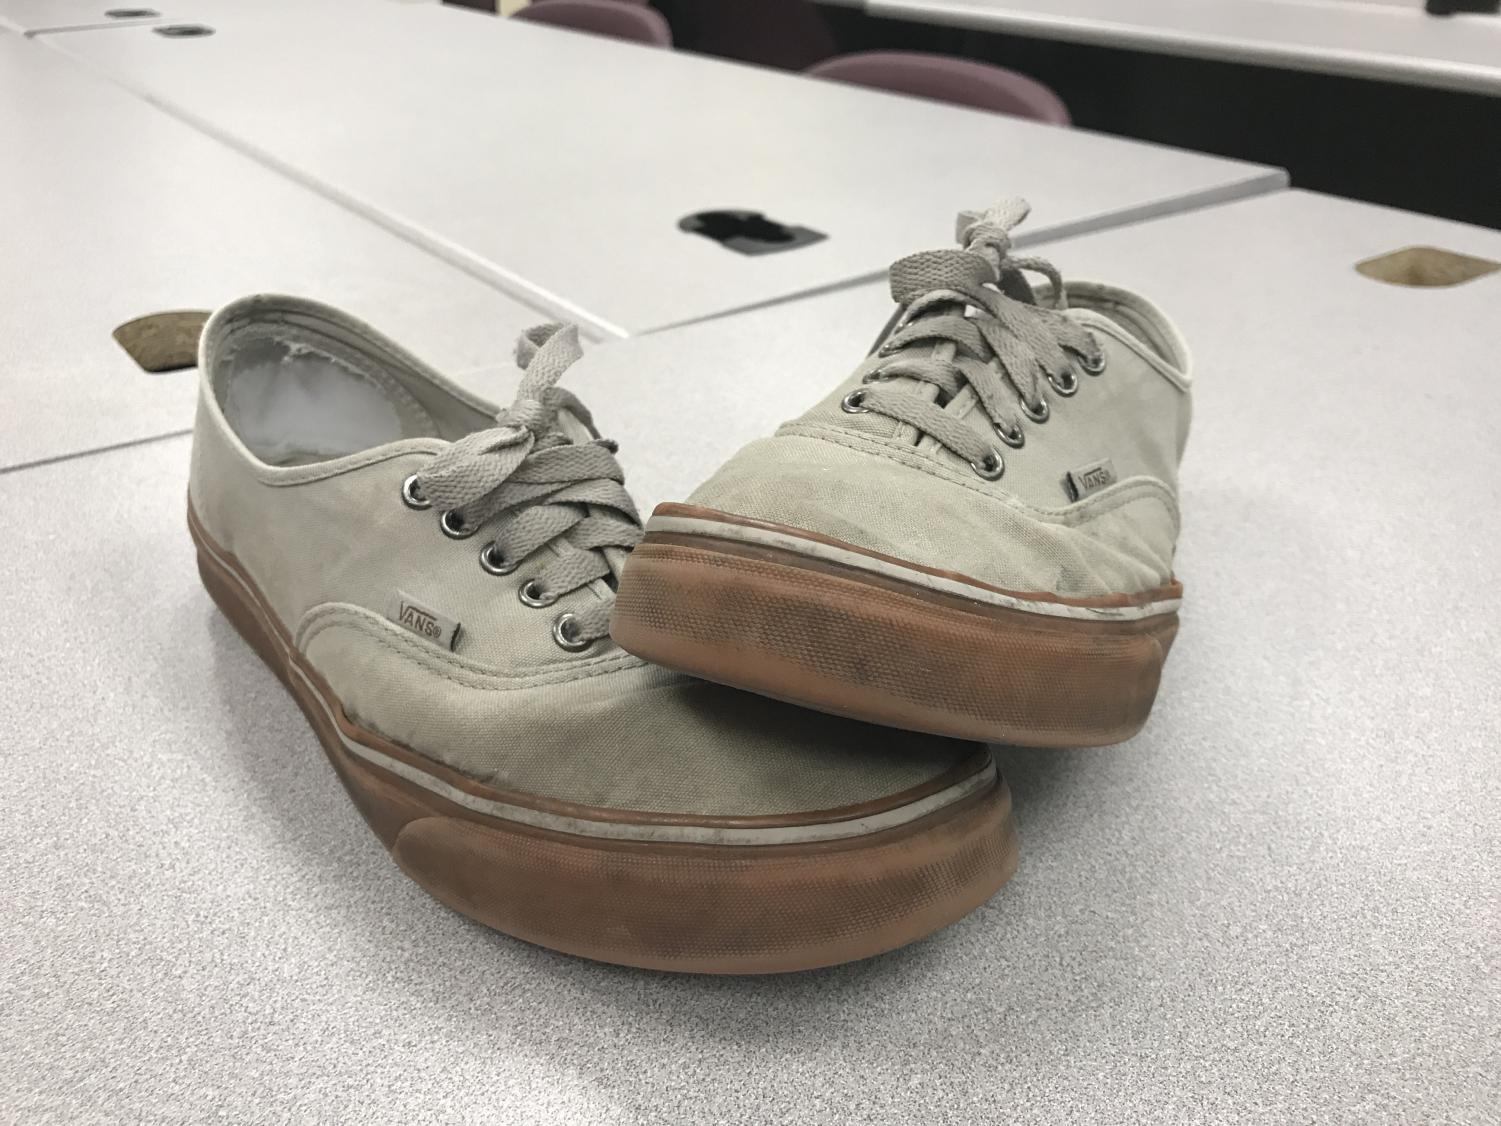 Vans are very popular among students but one student took it upon himself do make something of his own.